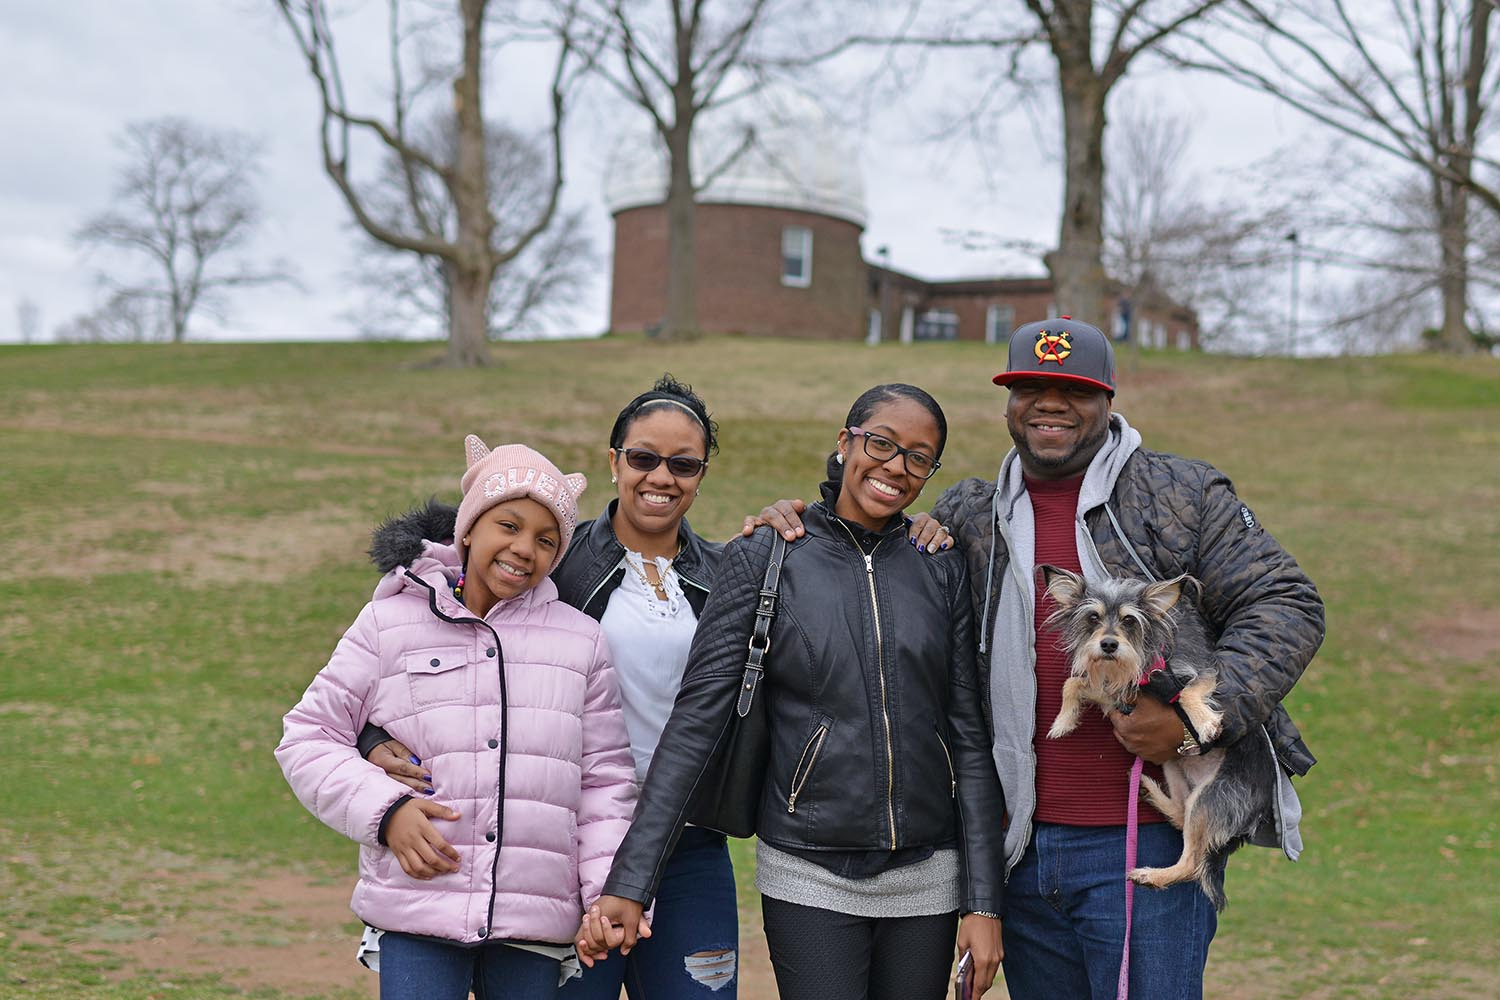 All Class of 2023 admitted students and their families were welcomed to Wesleyan April 10-12 for WesFest.